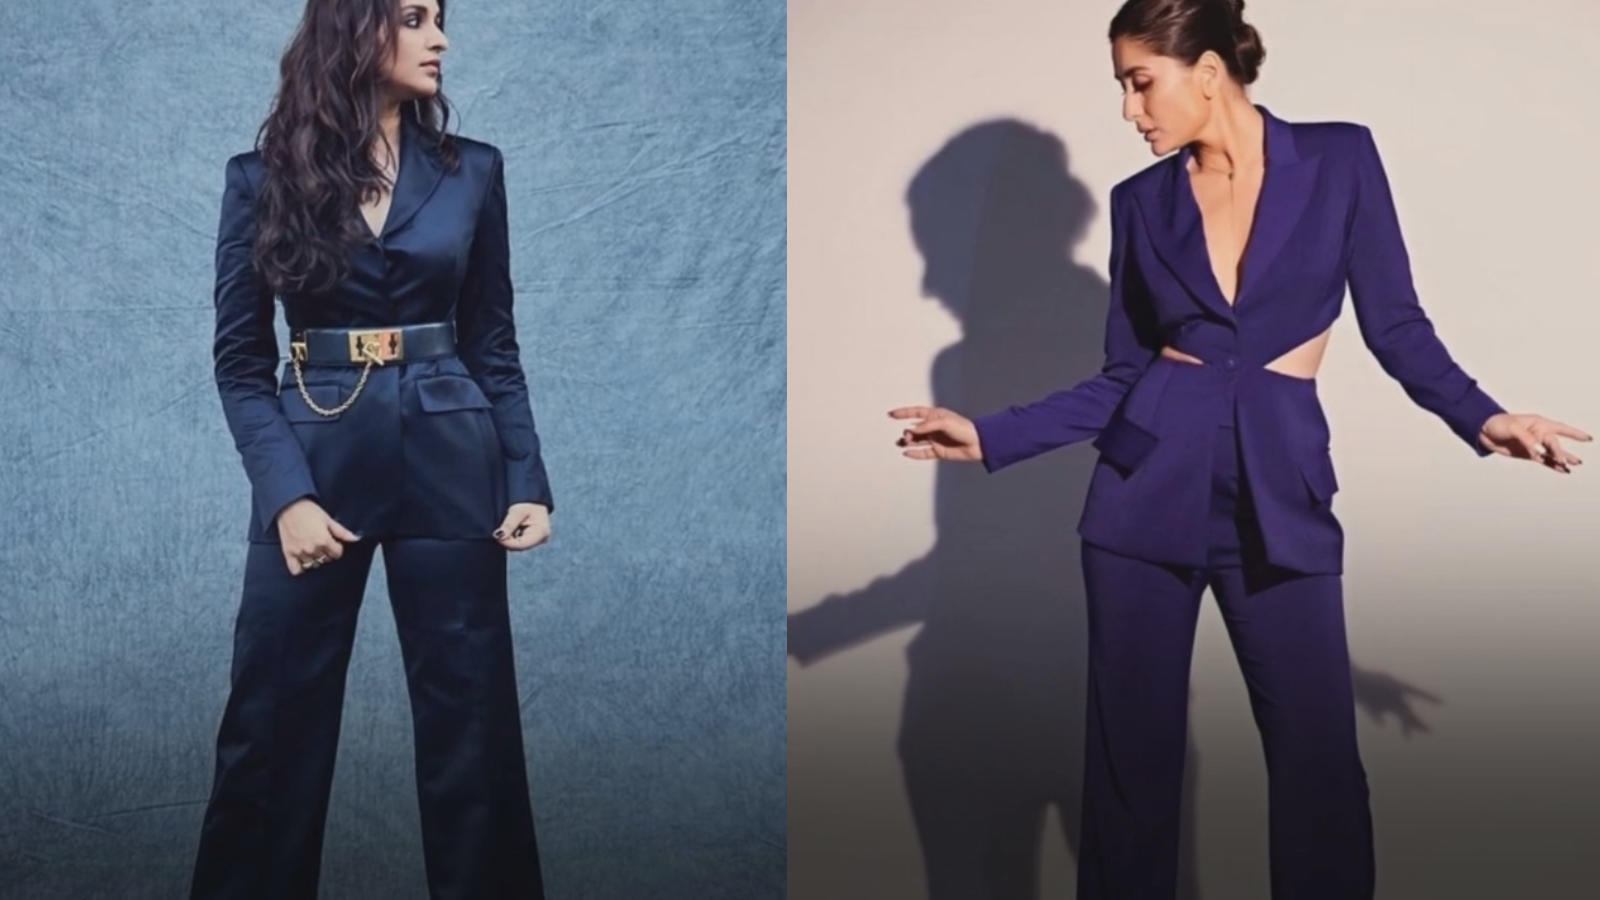 actresses-who-rock-the-pantsuit-look